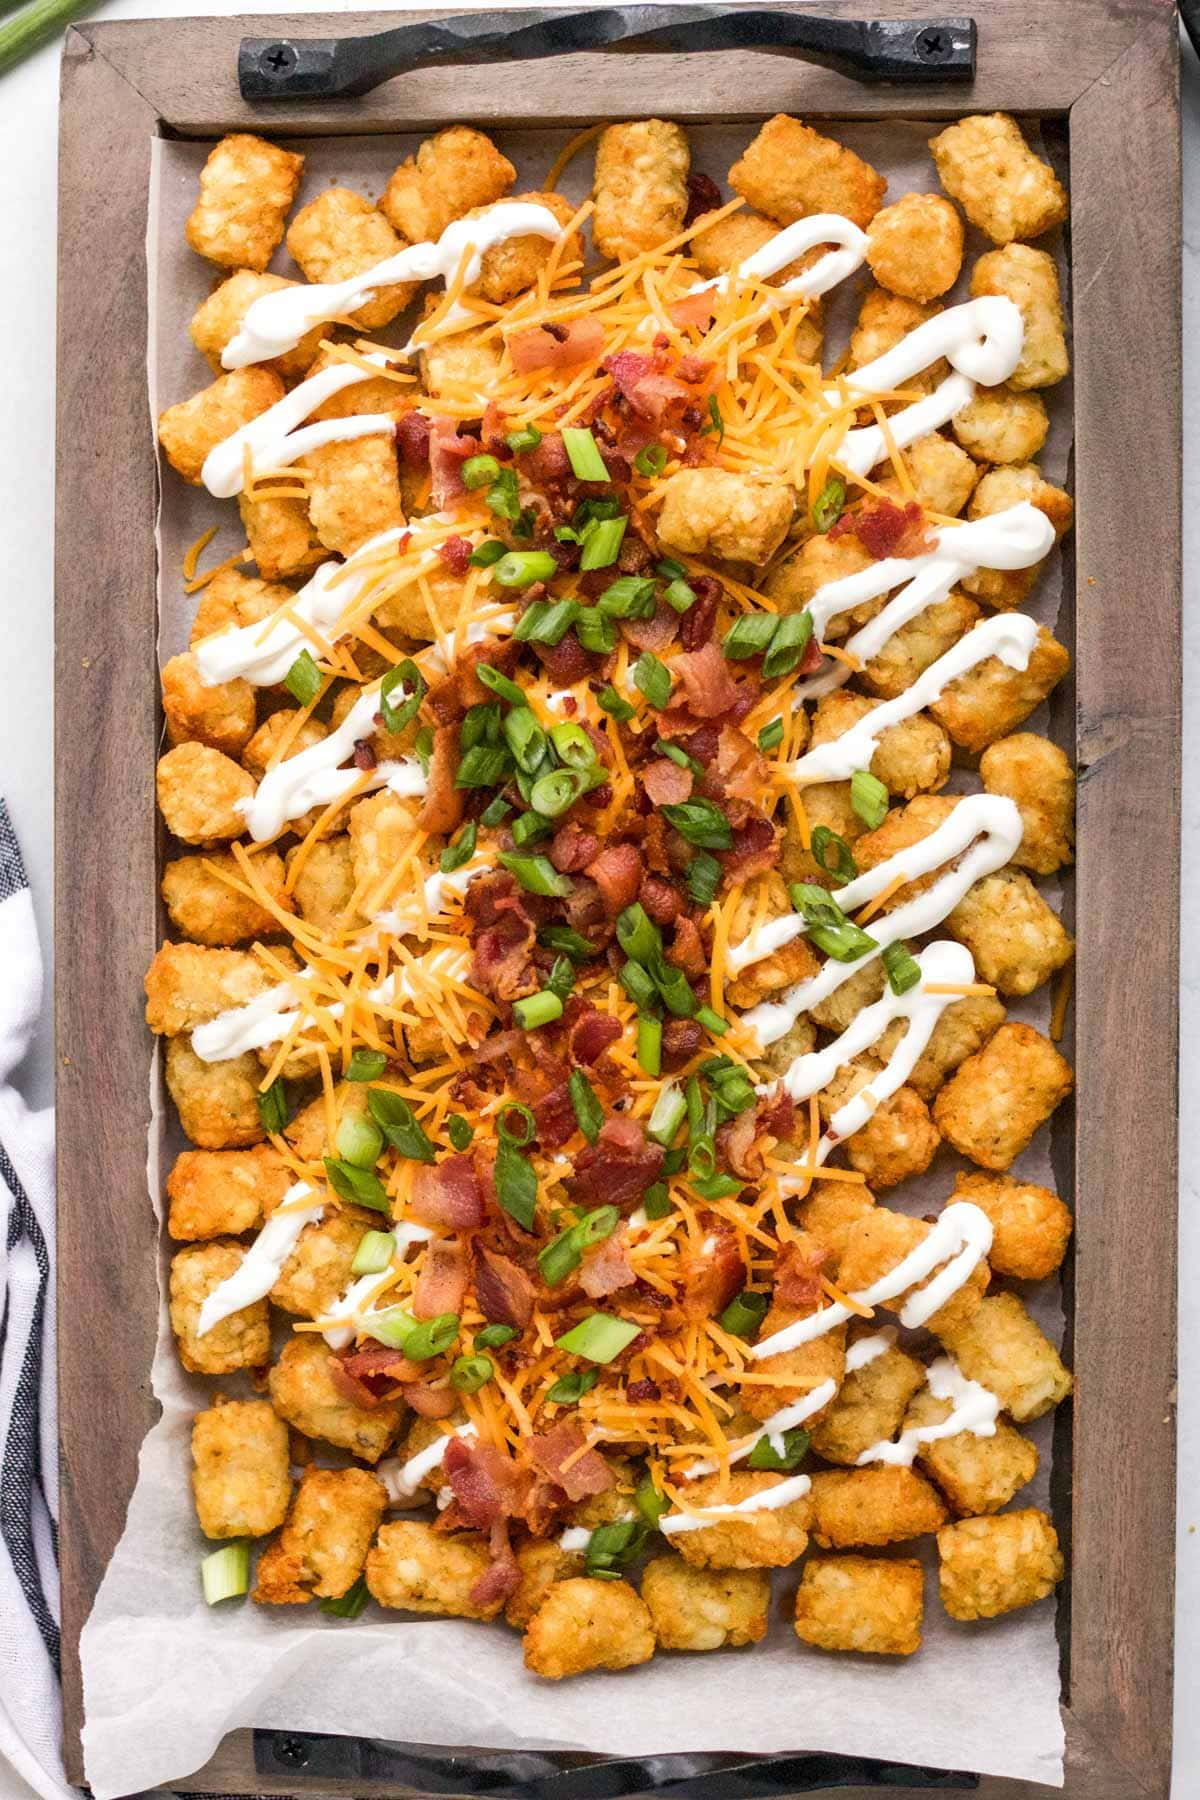 tray of tater tots with cheese, sour cream, green onions and bacon